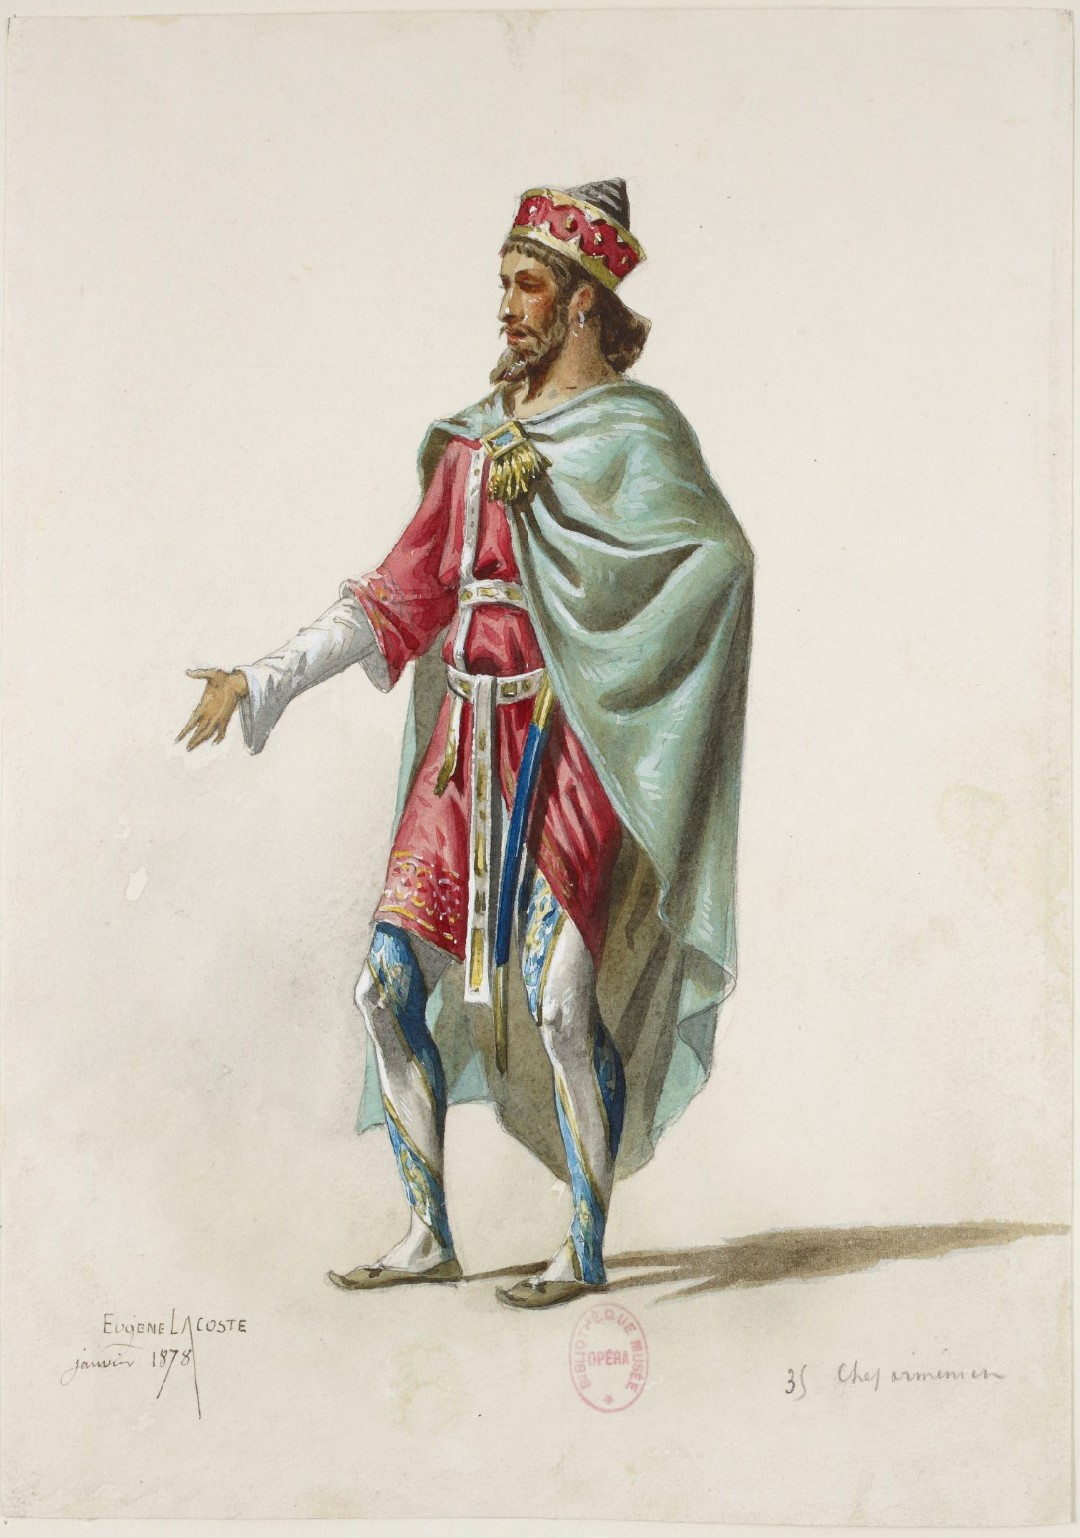 Armenian Chief by Eugene Lacoste